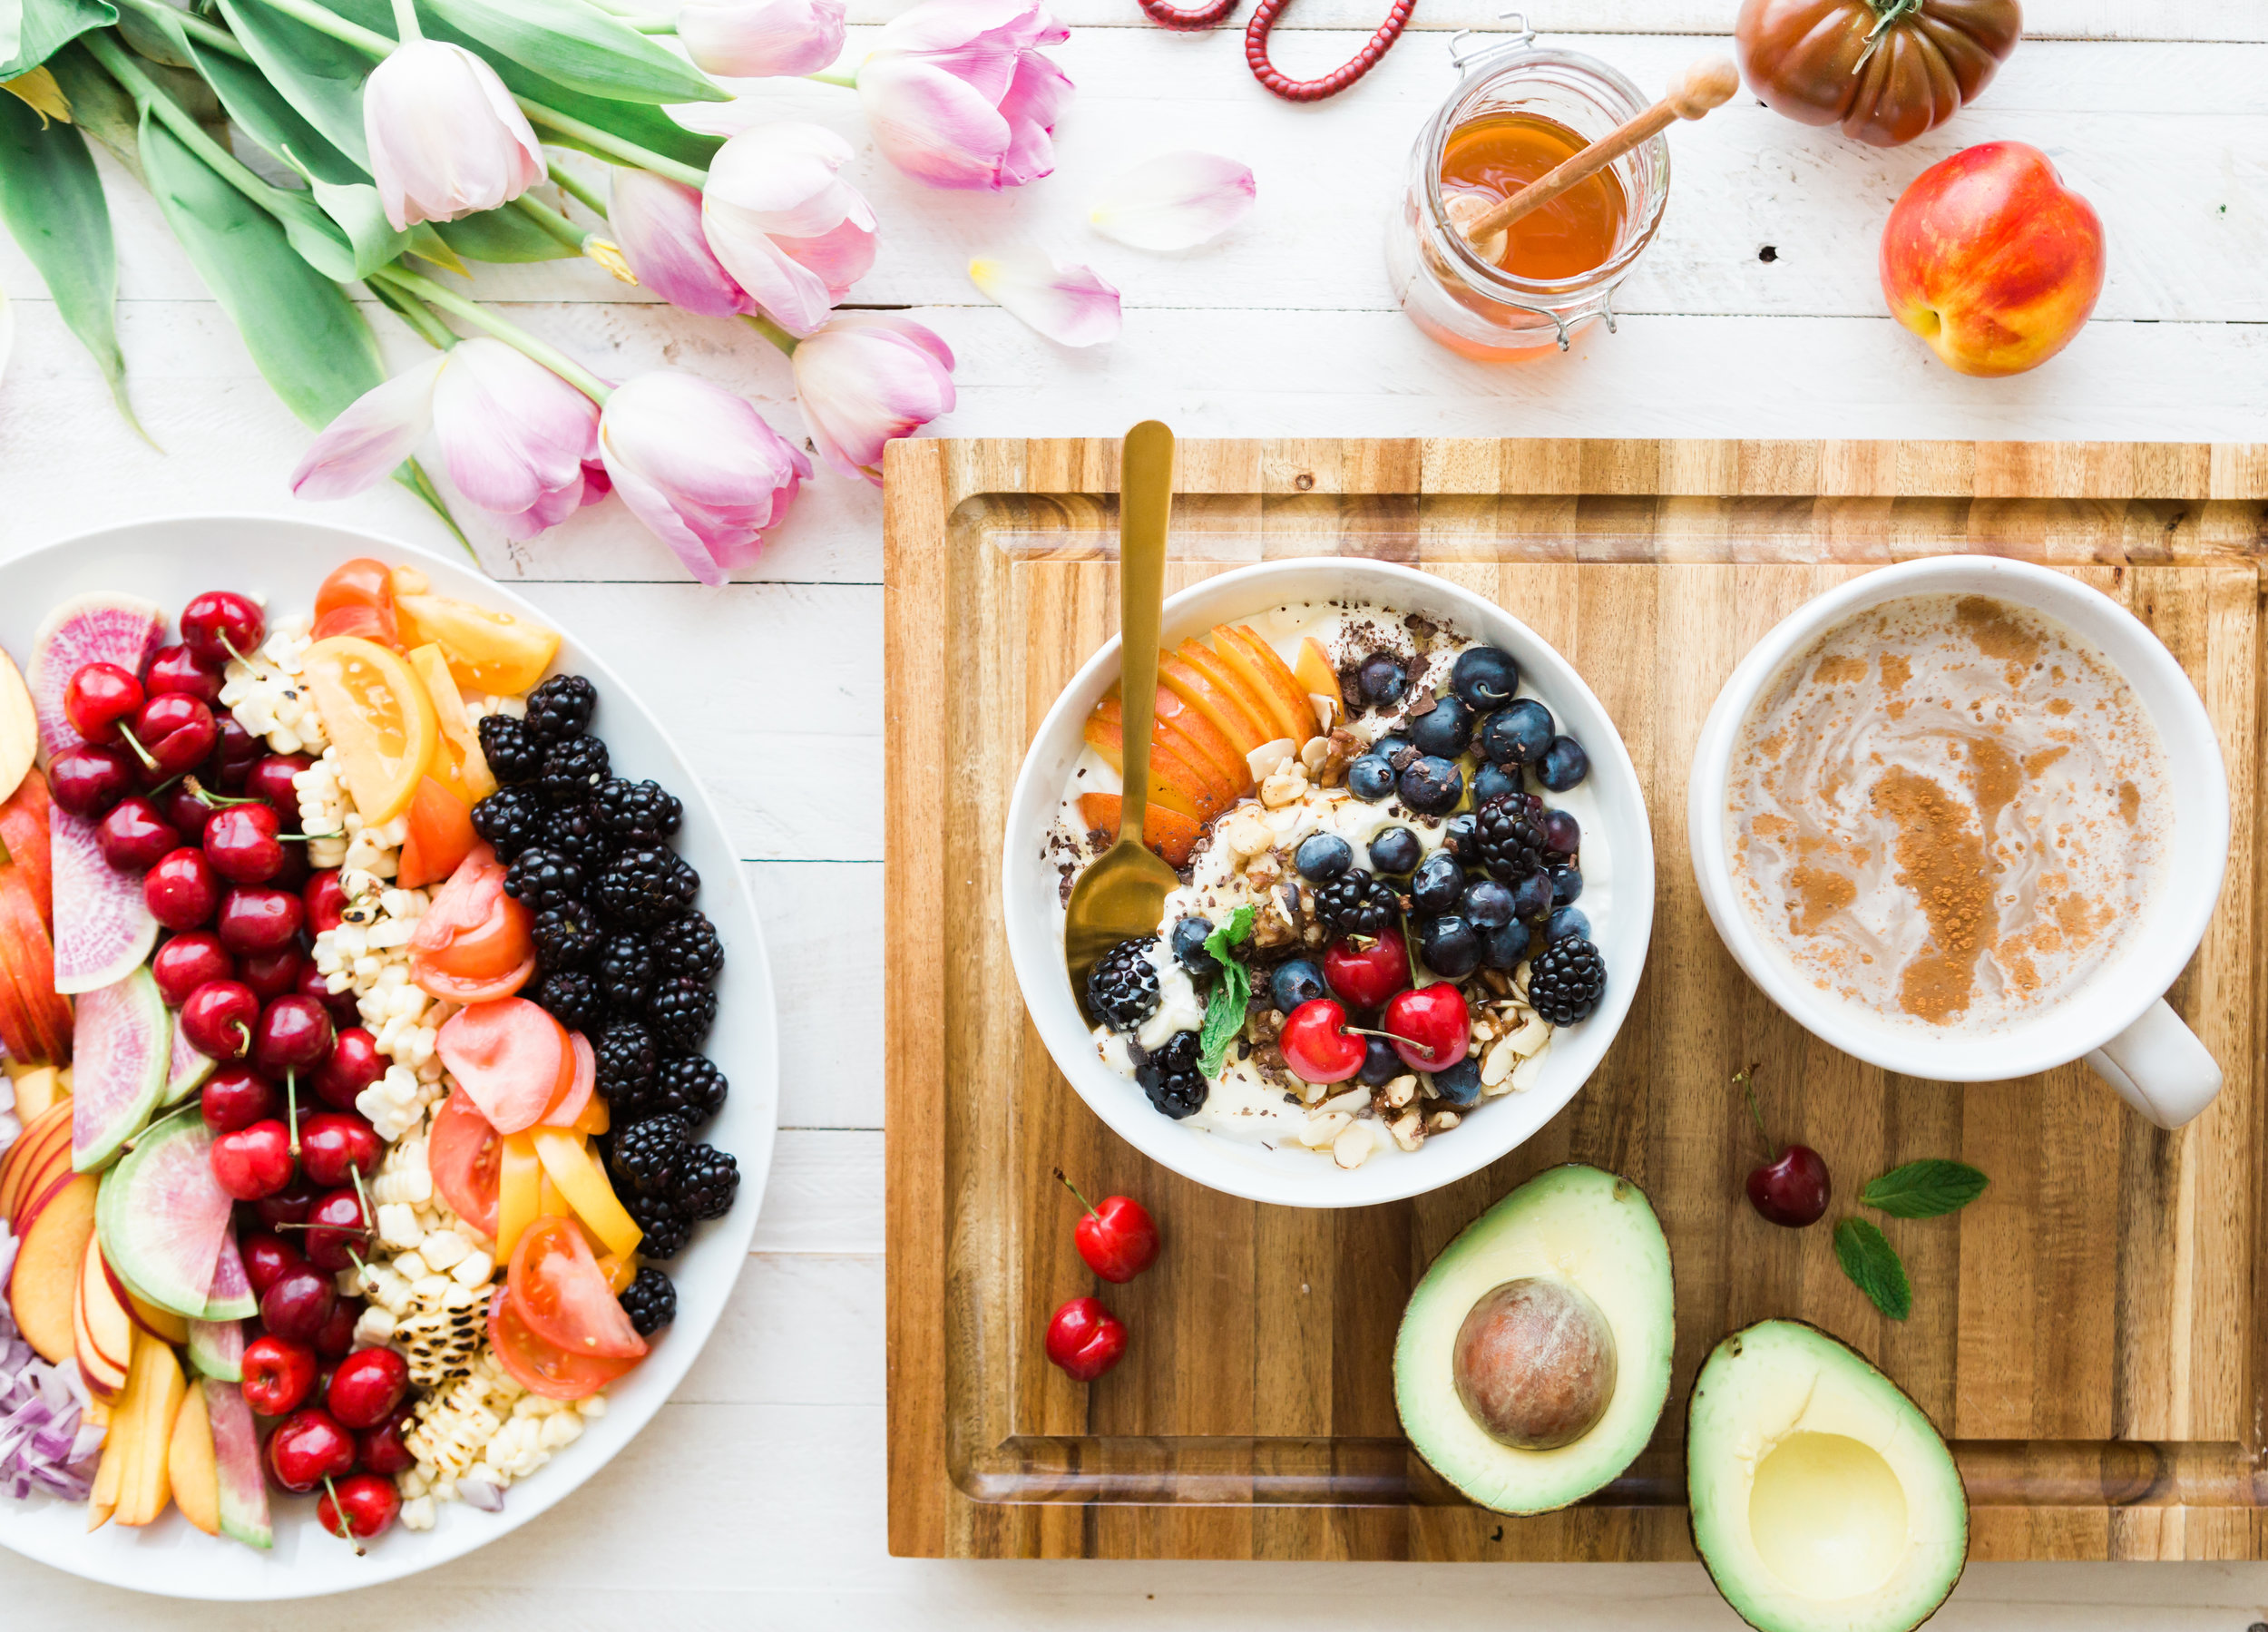 97 Newbie Keto Mistakes I Made (and how to avoid them) Plan a Healthy Life